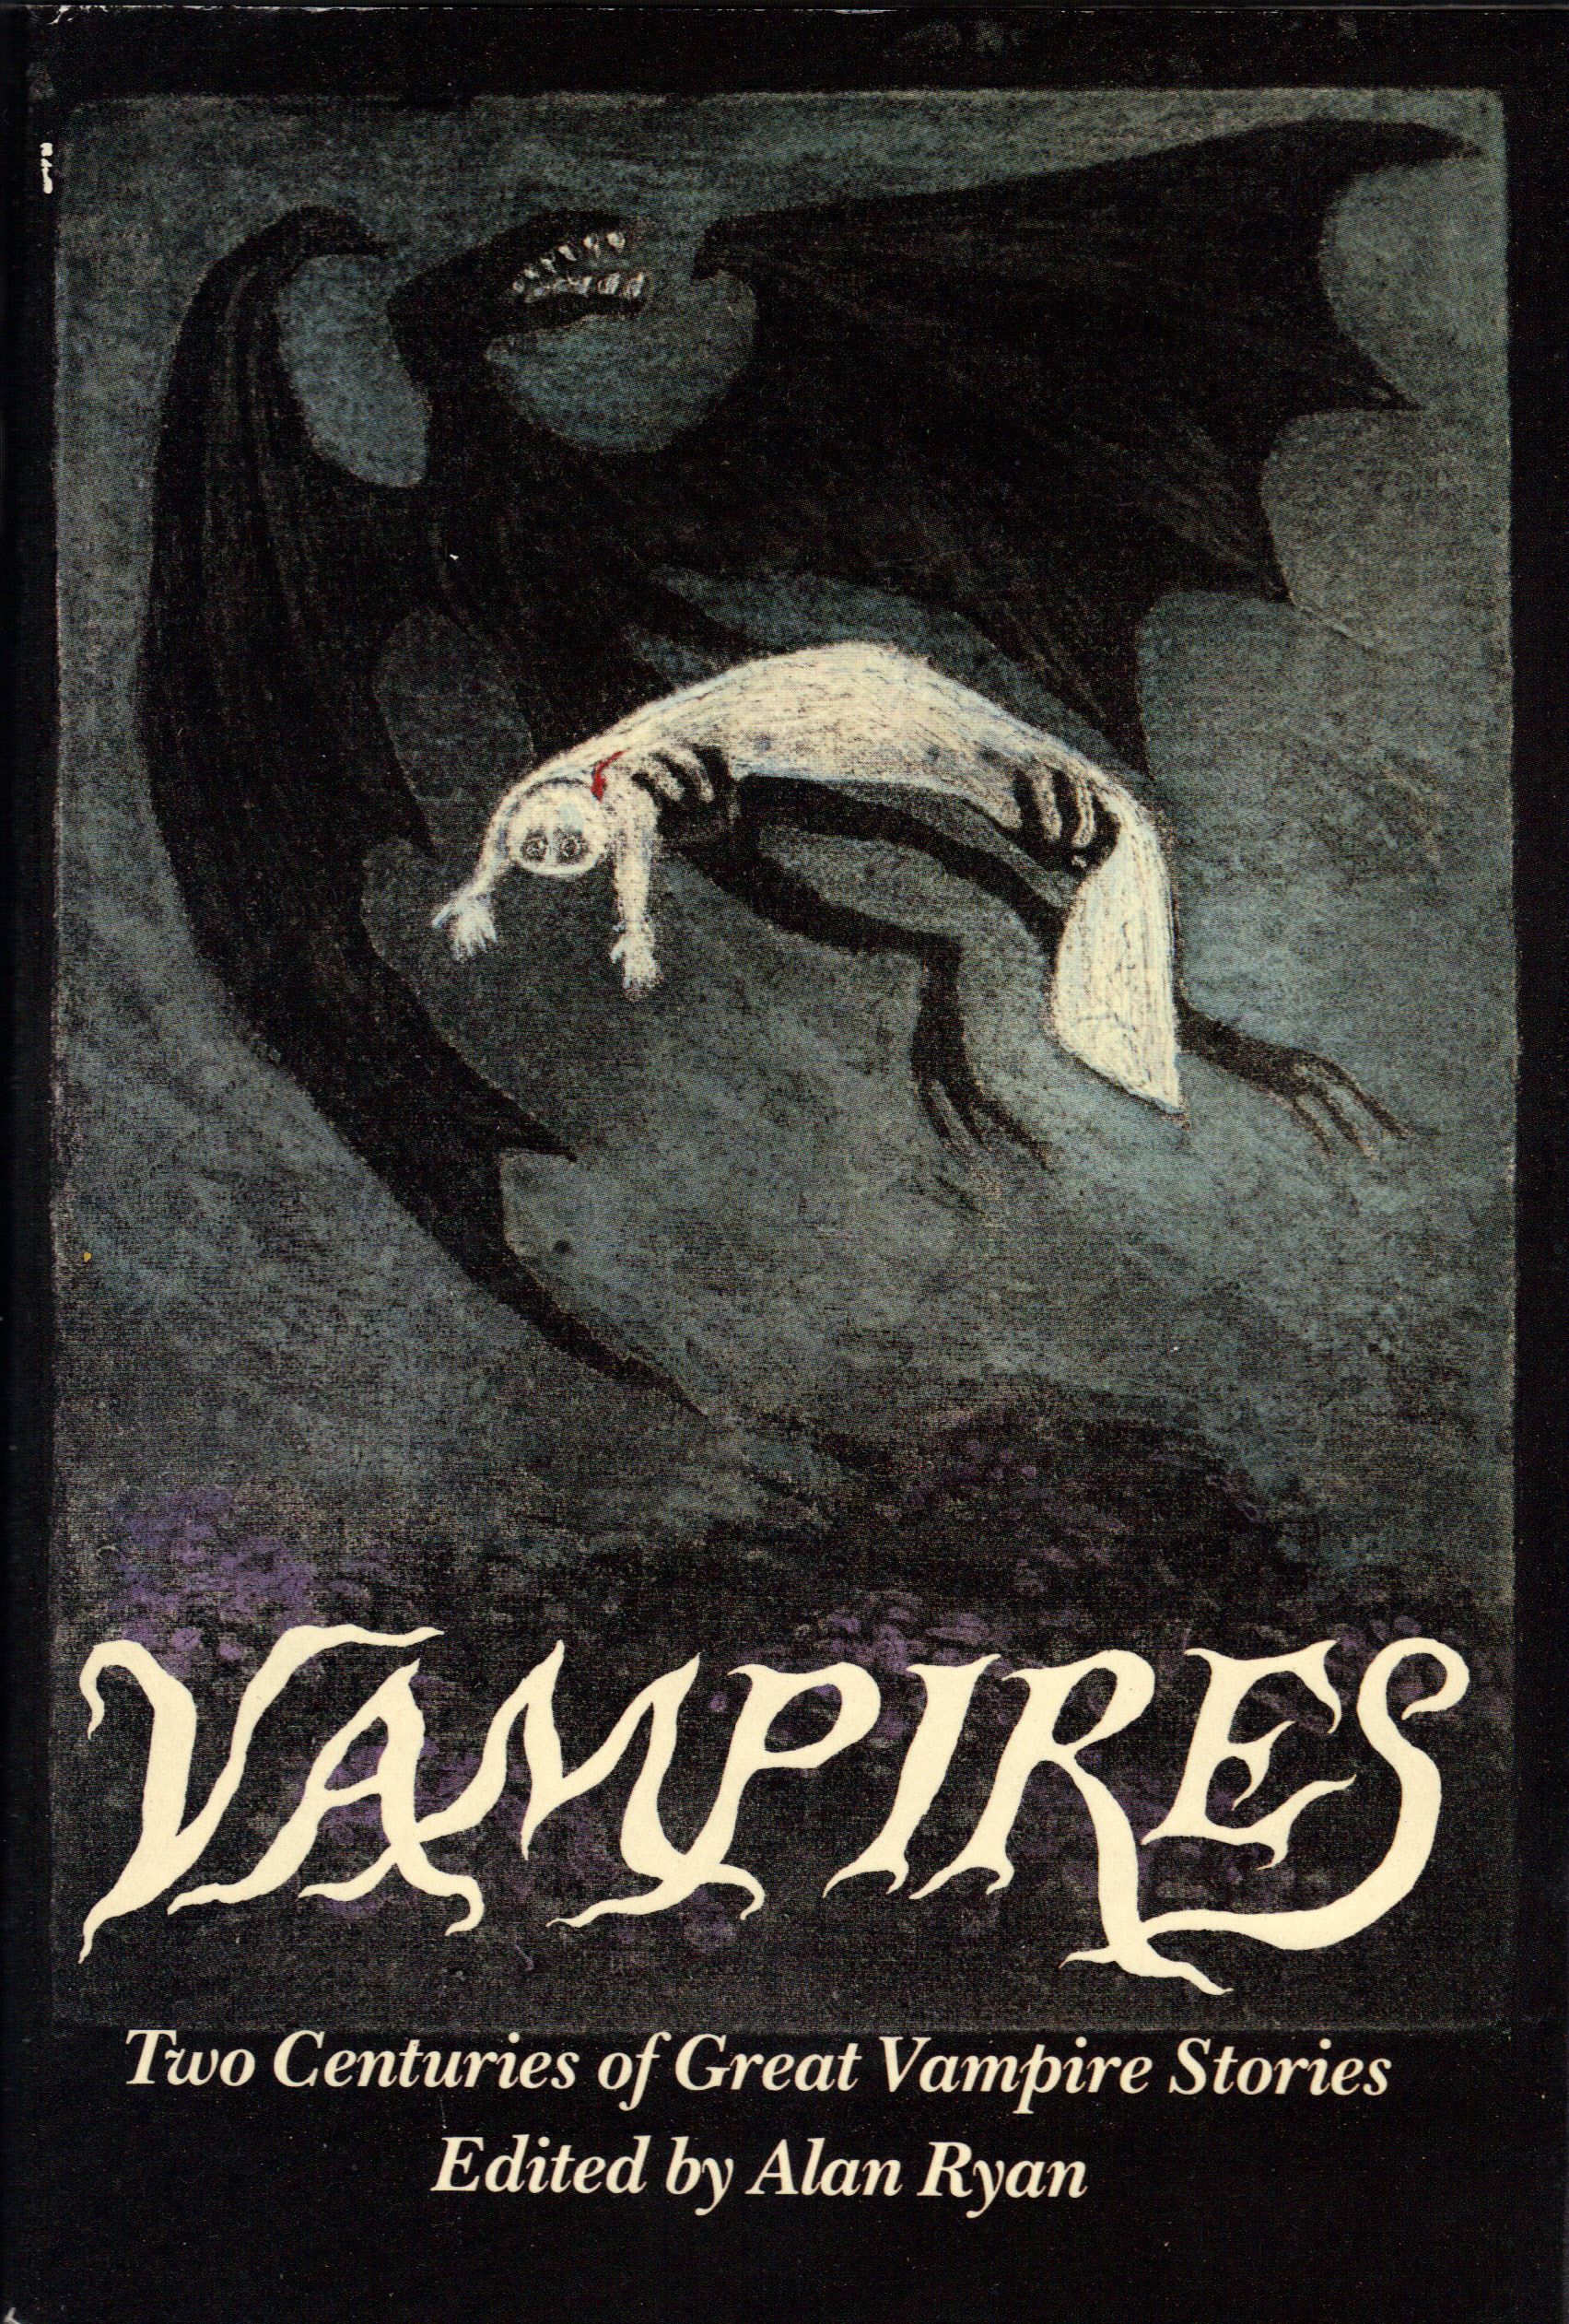 Image for VAMPIRES ~ Two Centuries of Great Vampire Stories